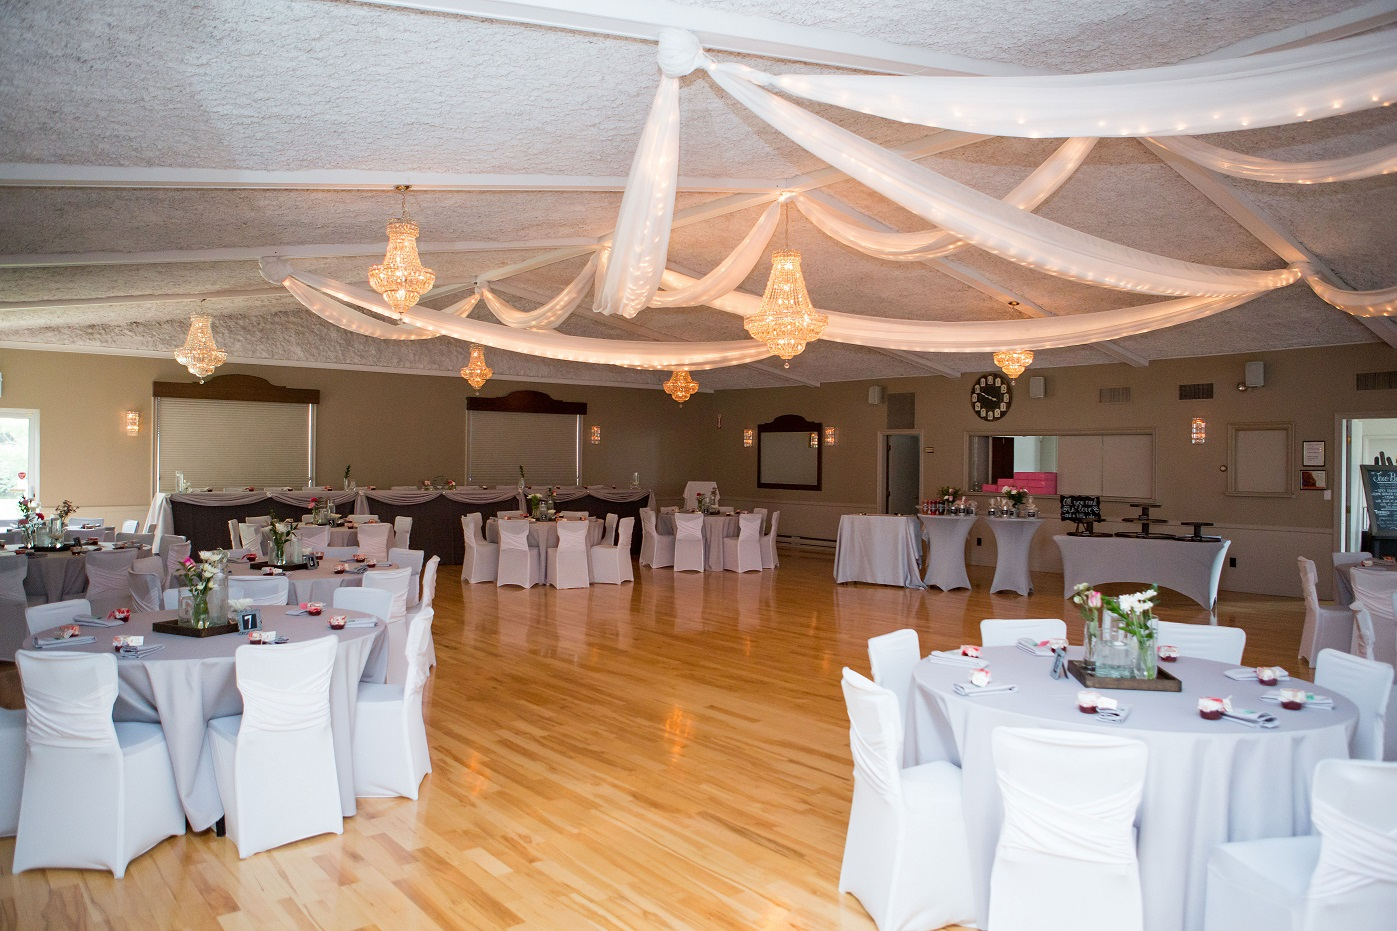 room decorated for a wedding with tables and chairs covered in white linens and fabric streamers with twinkle lights hanging from the ceiling